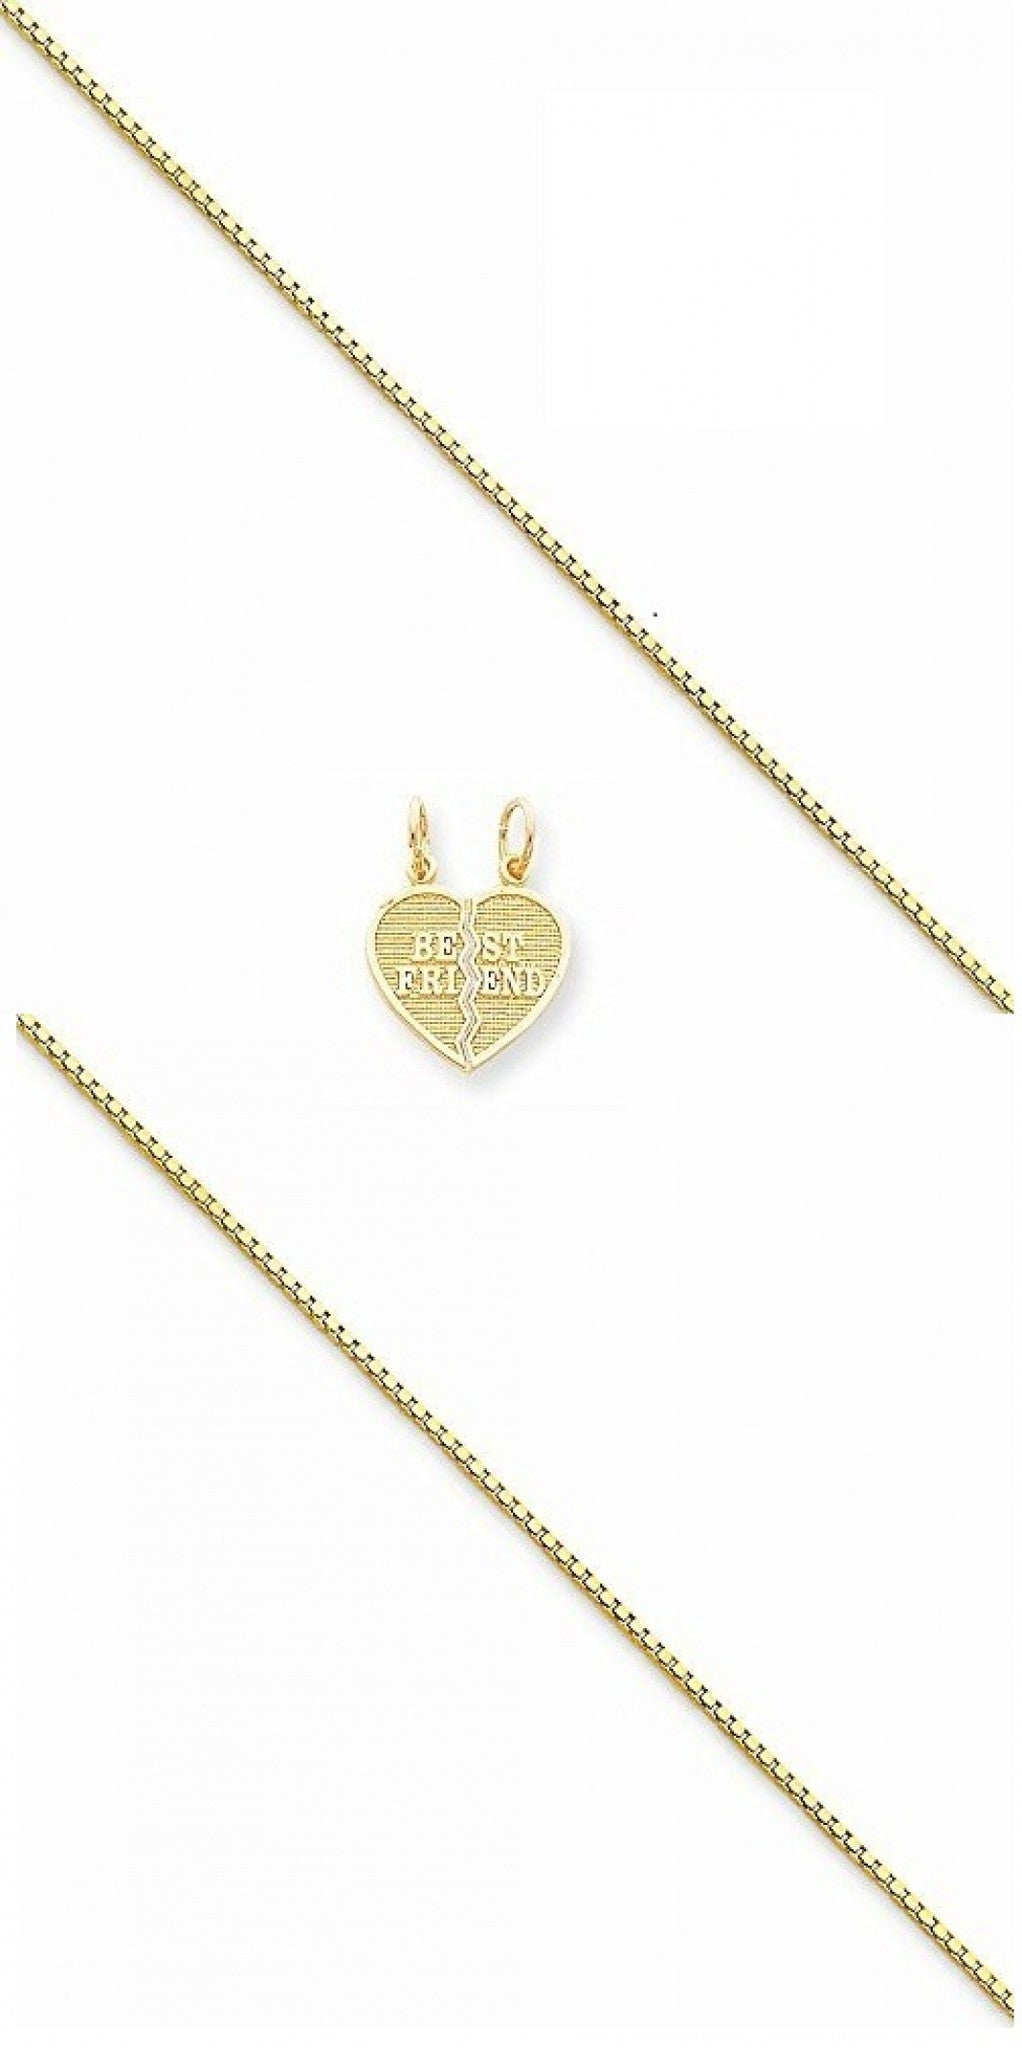 10k Friendship Pendant - Chain Included (2) - shopvistar